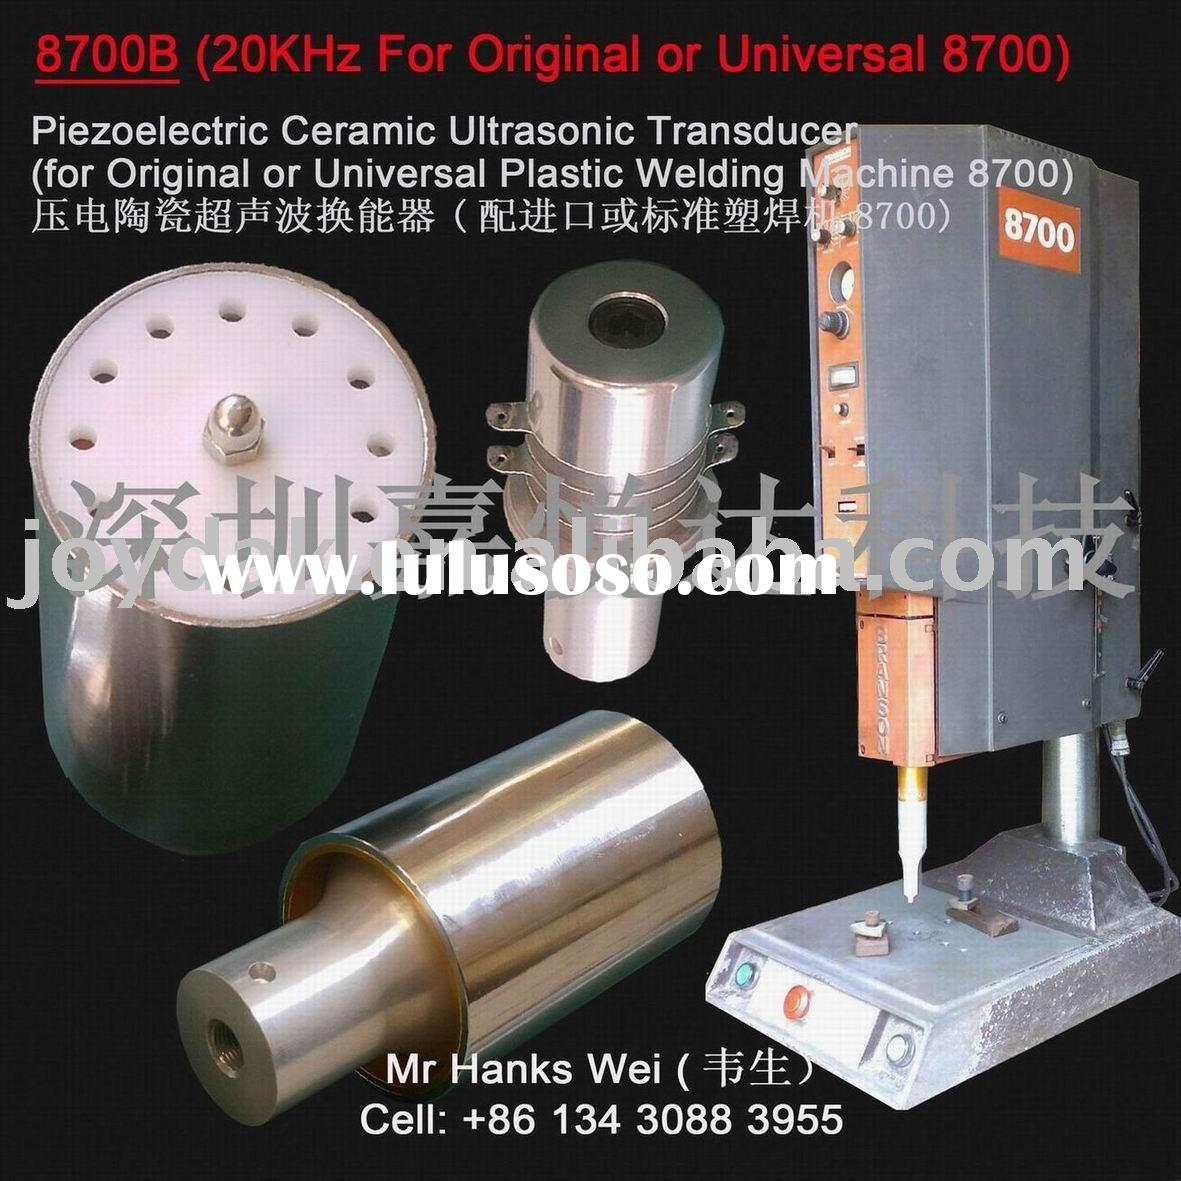 Ultrasonic welding converter 20KHz for Universal Plastic welding 8700